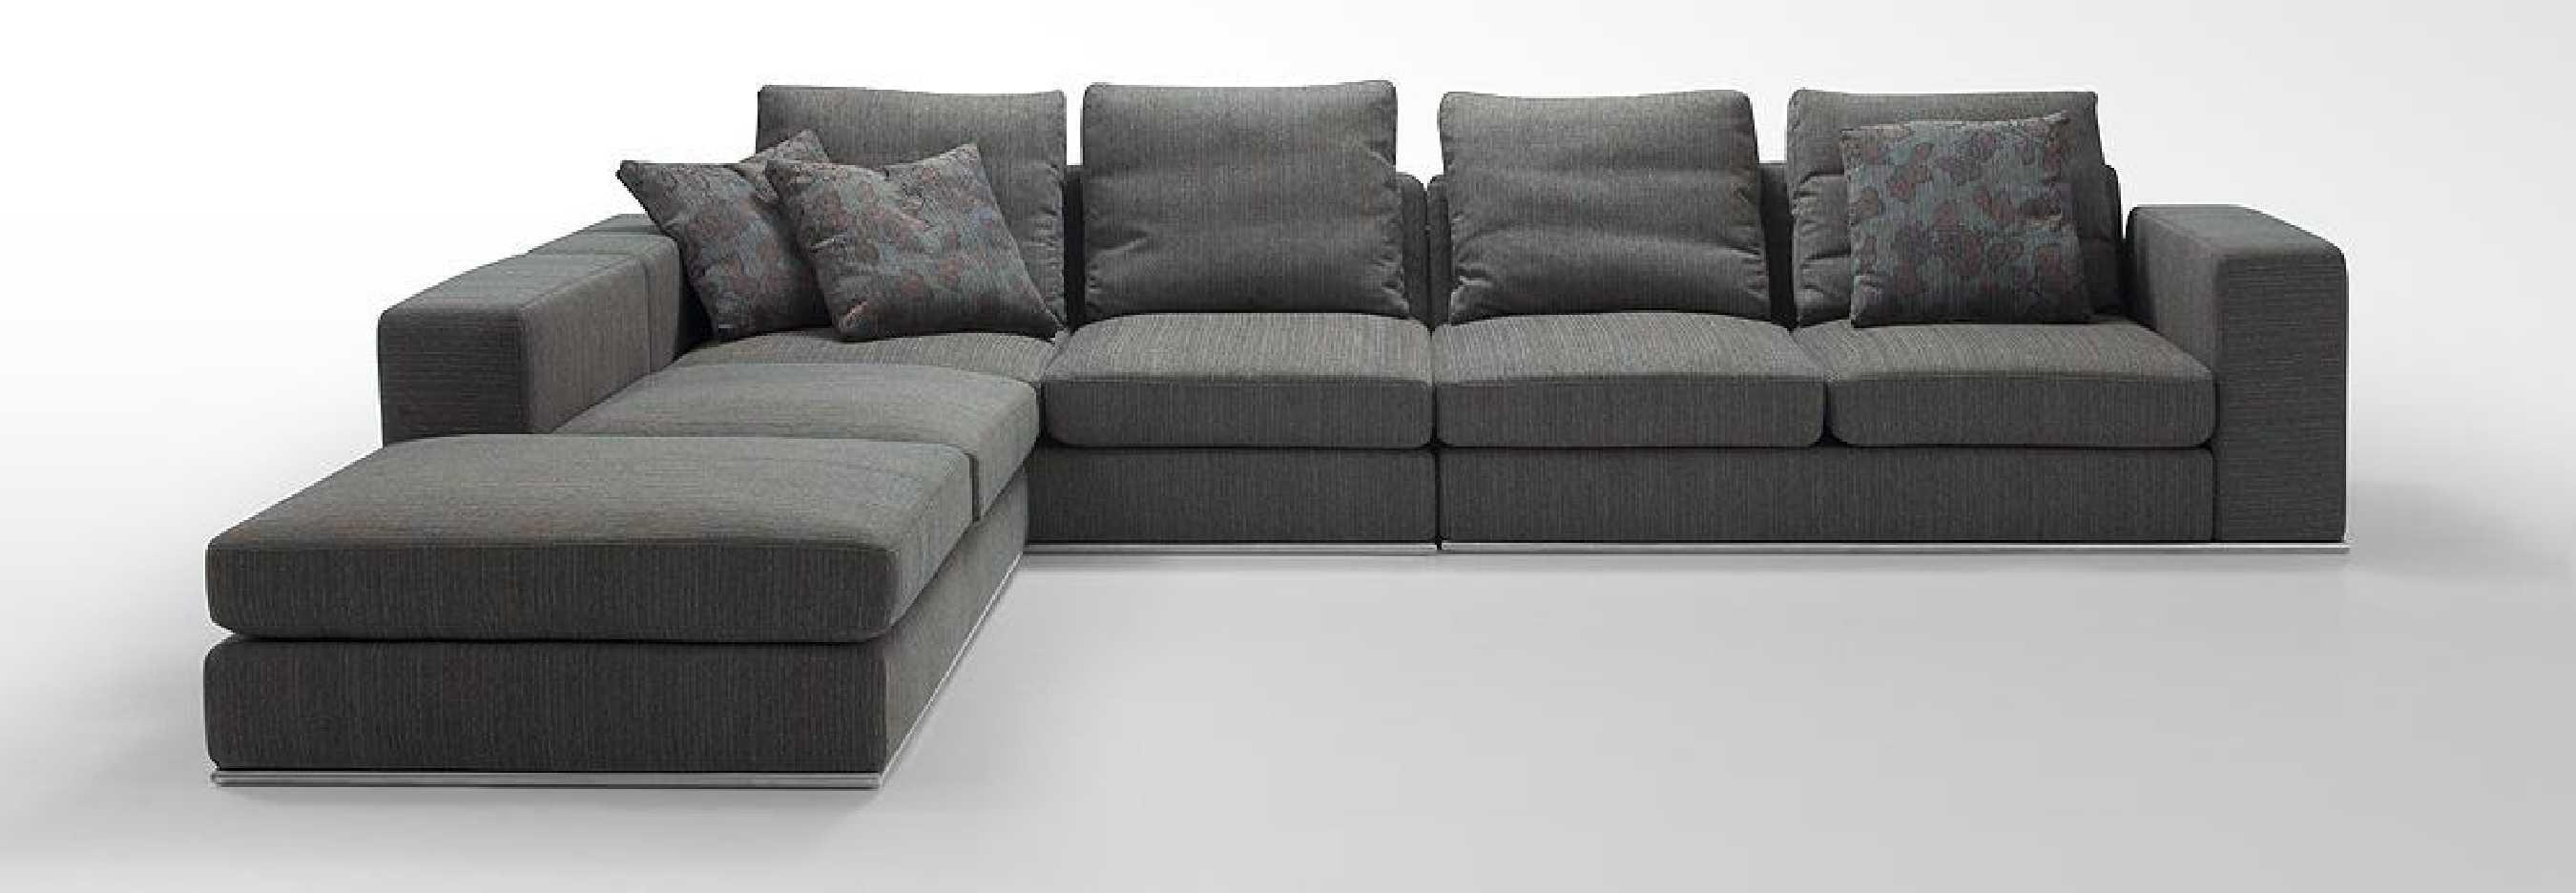 Furniture: Amusing Furniture Decorated L Shaped Sleeper Sofa For Within Small L Shaped Sectional Sofas (Image 2 of 20)